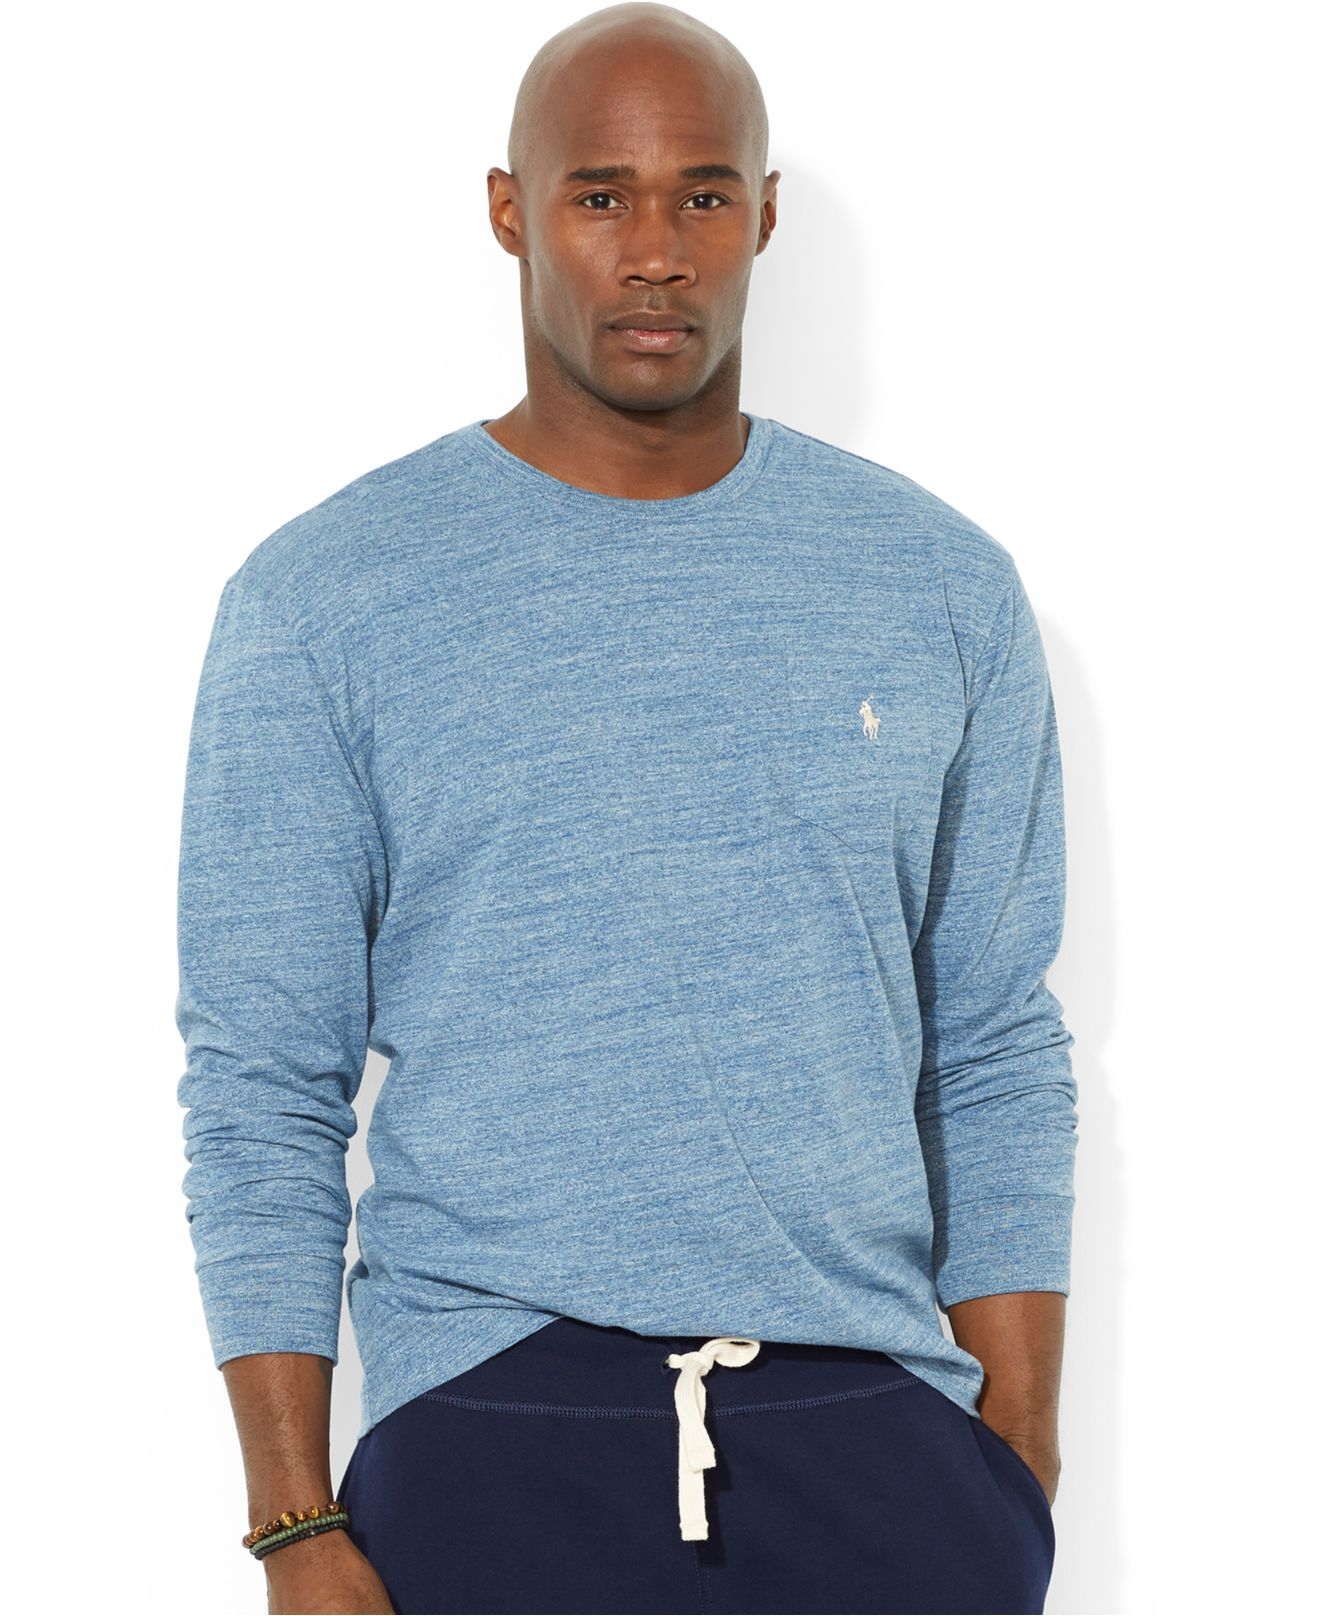 9772b7c0558d Lyst - Polo Ralph Lauren Big And Tall Crew-Neck Pocket T-Shirt in Blue for  Men